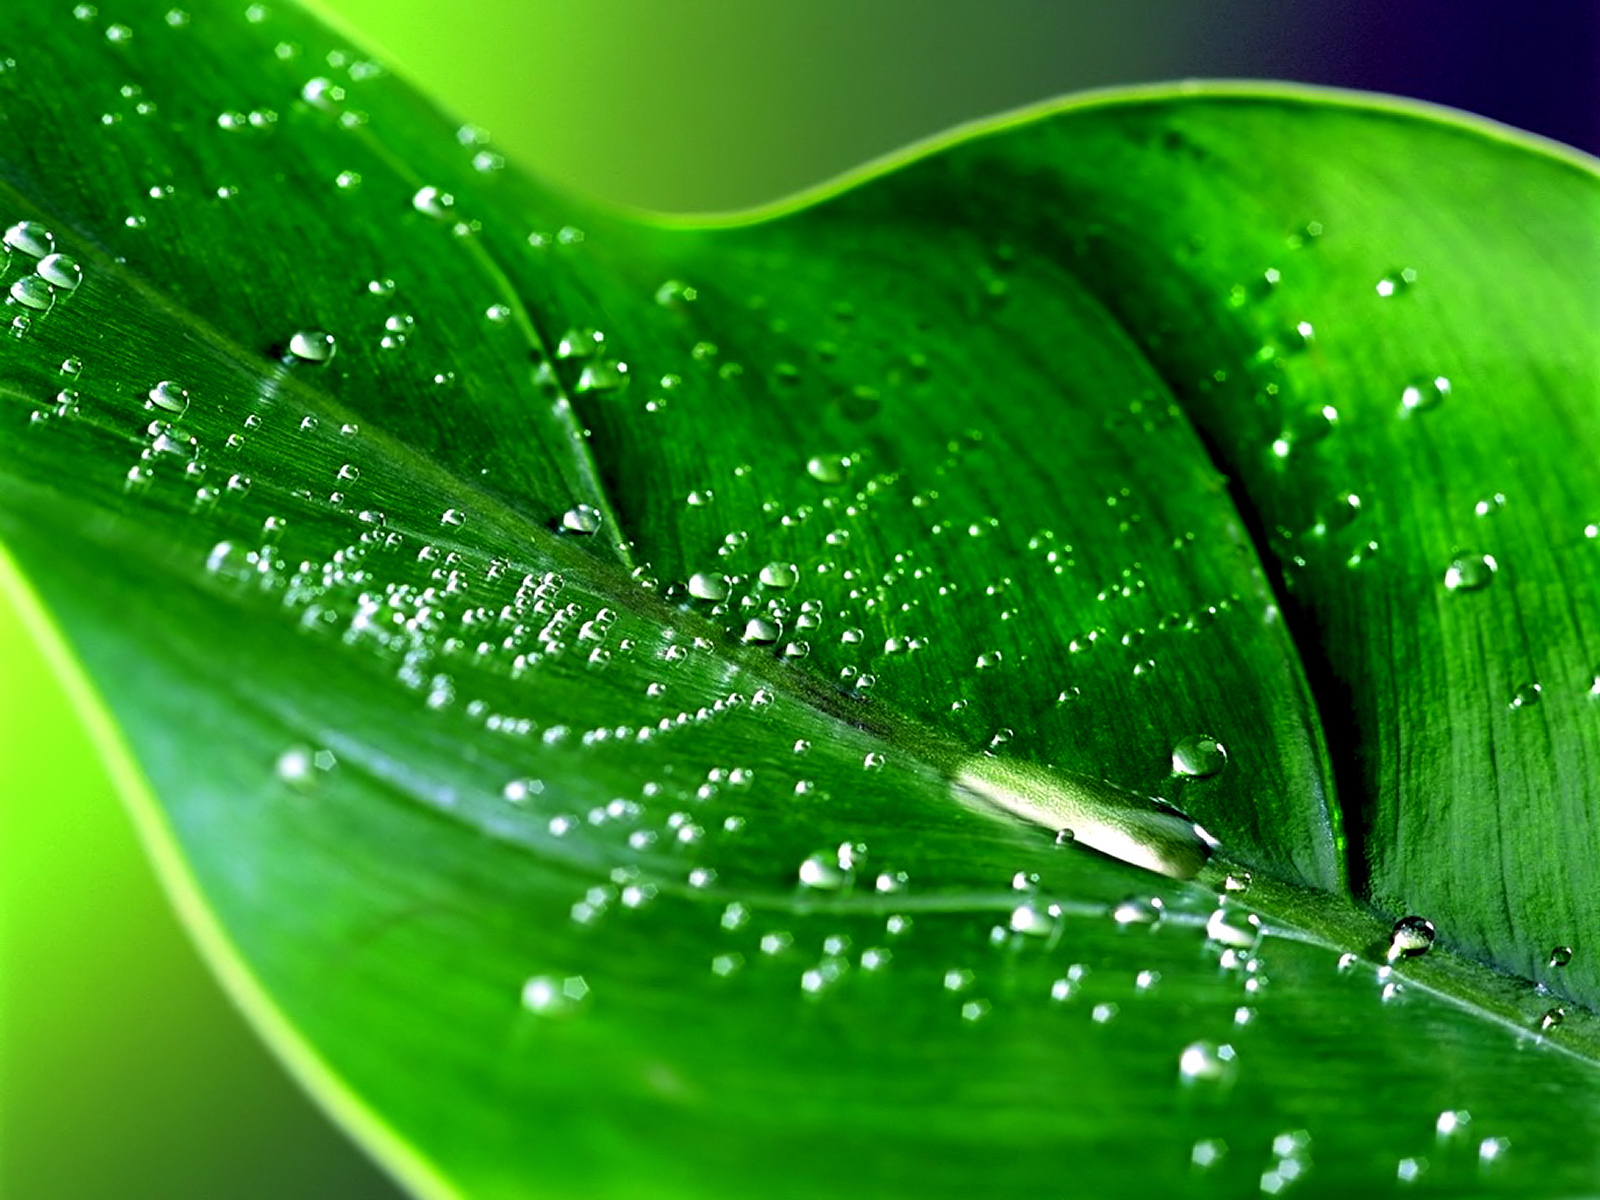 http://2.bp.blogspot.com/_W5VzPqNdvh0/TSNQ9PyH55I/AAAAAAAAAbc/0g-bCz_0fwU/s1600/drops-on-leaf-wallpapers_12948_1600x1200.jpg